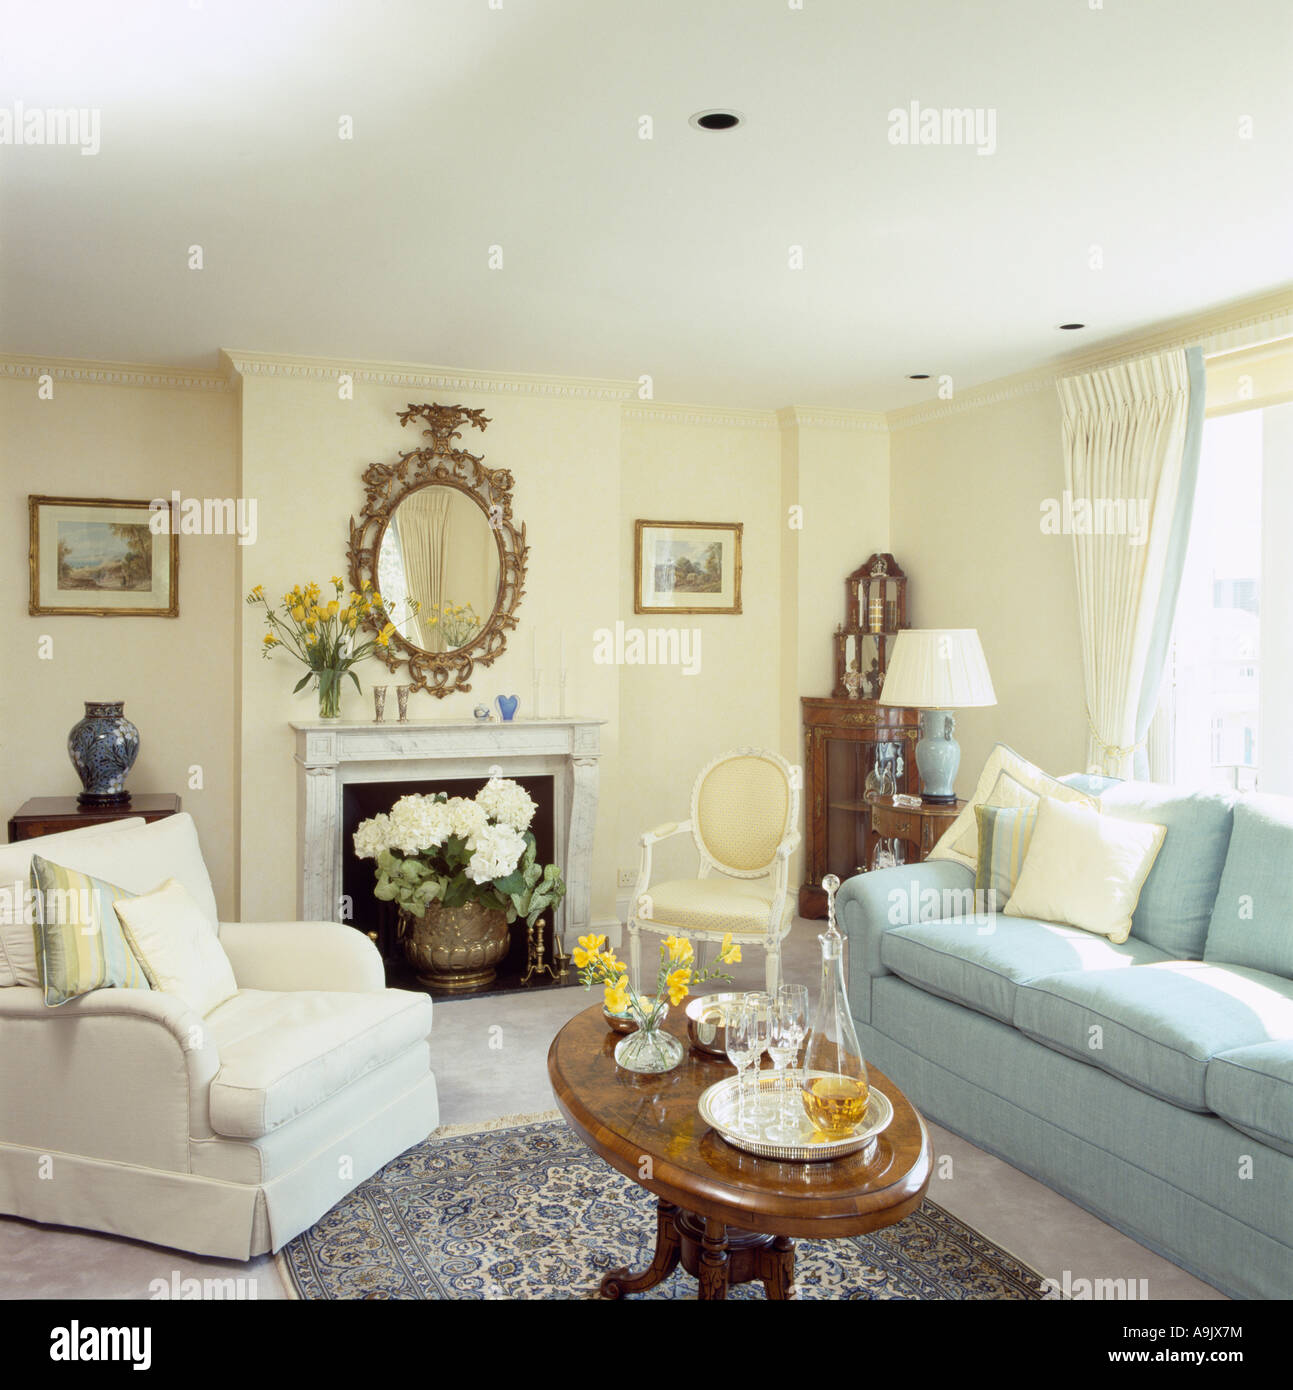 White armchair and pastel blue sofa in pale yellow sitting room with ...